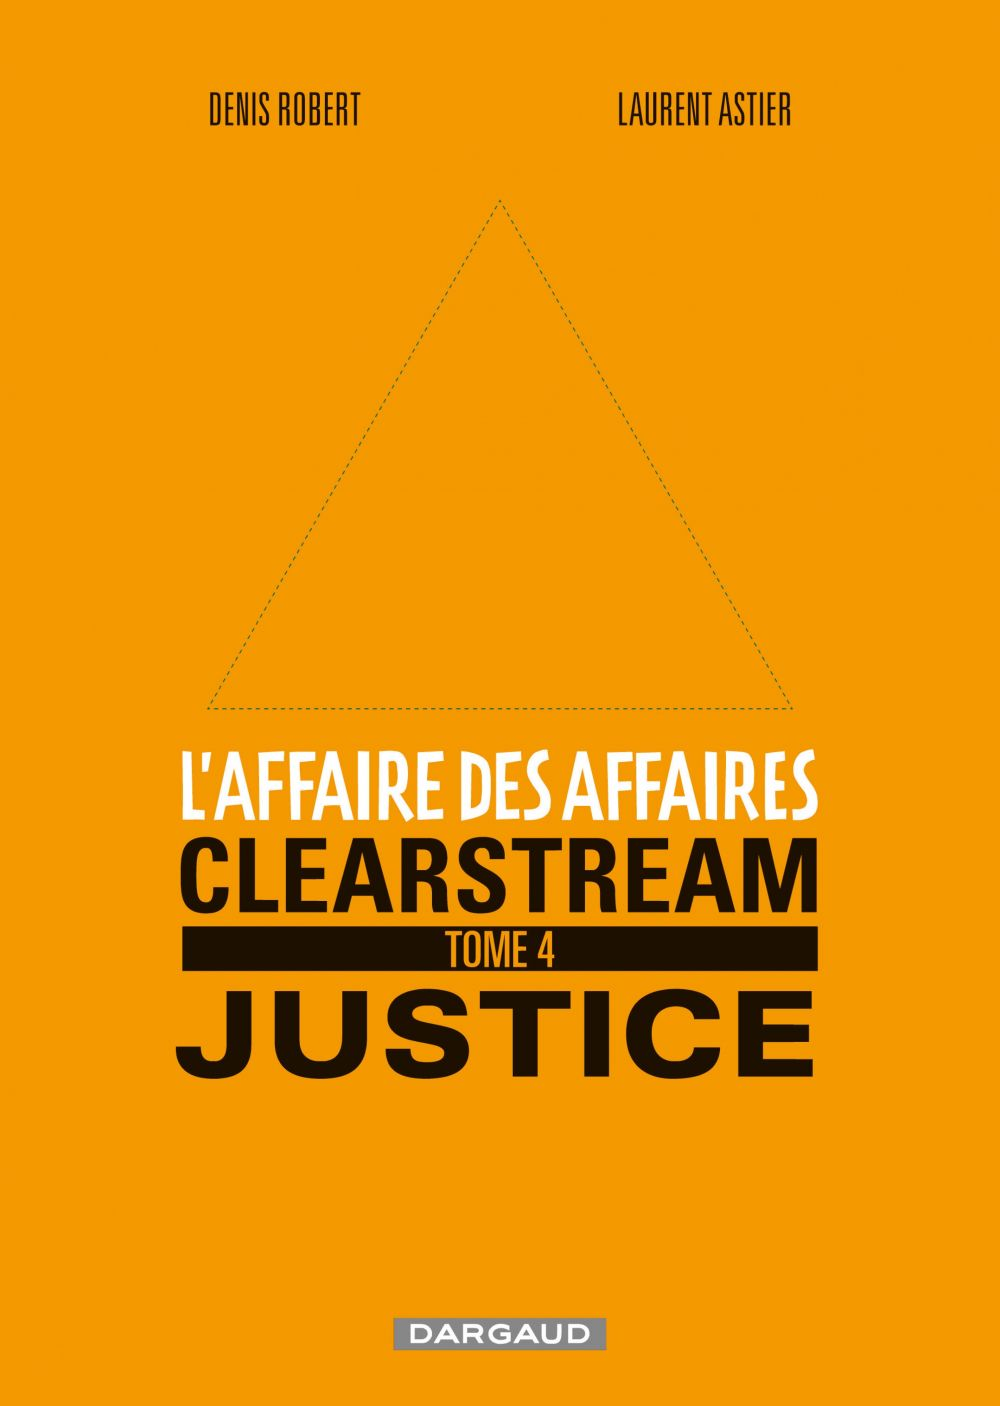 L'affaire des affaires - Tome 4 - Clearstream Justice